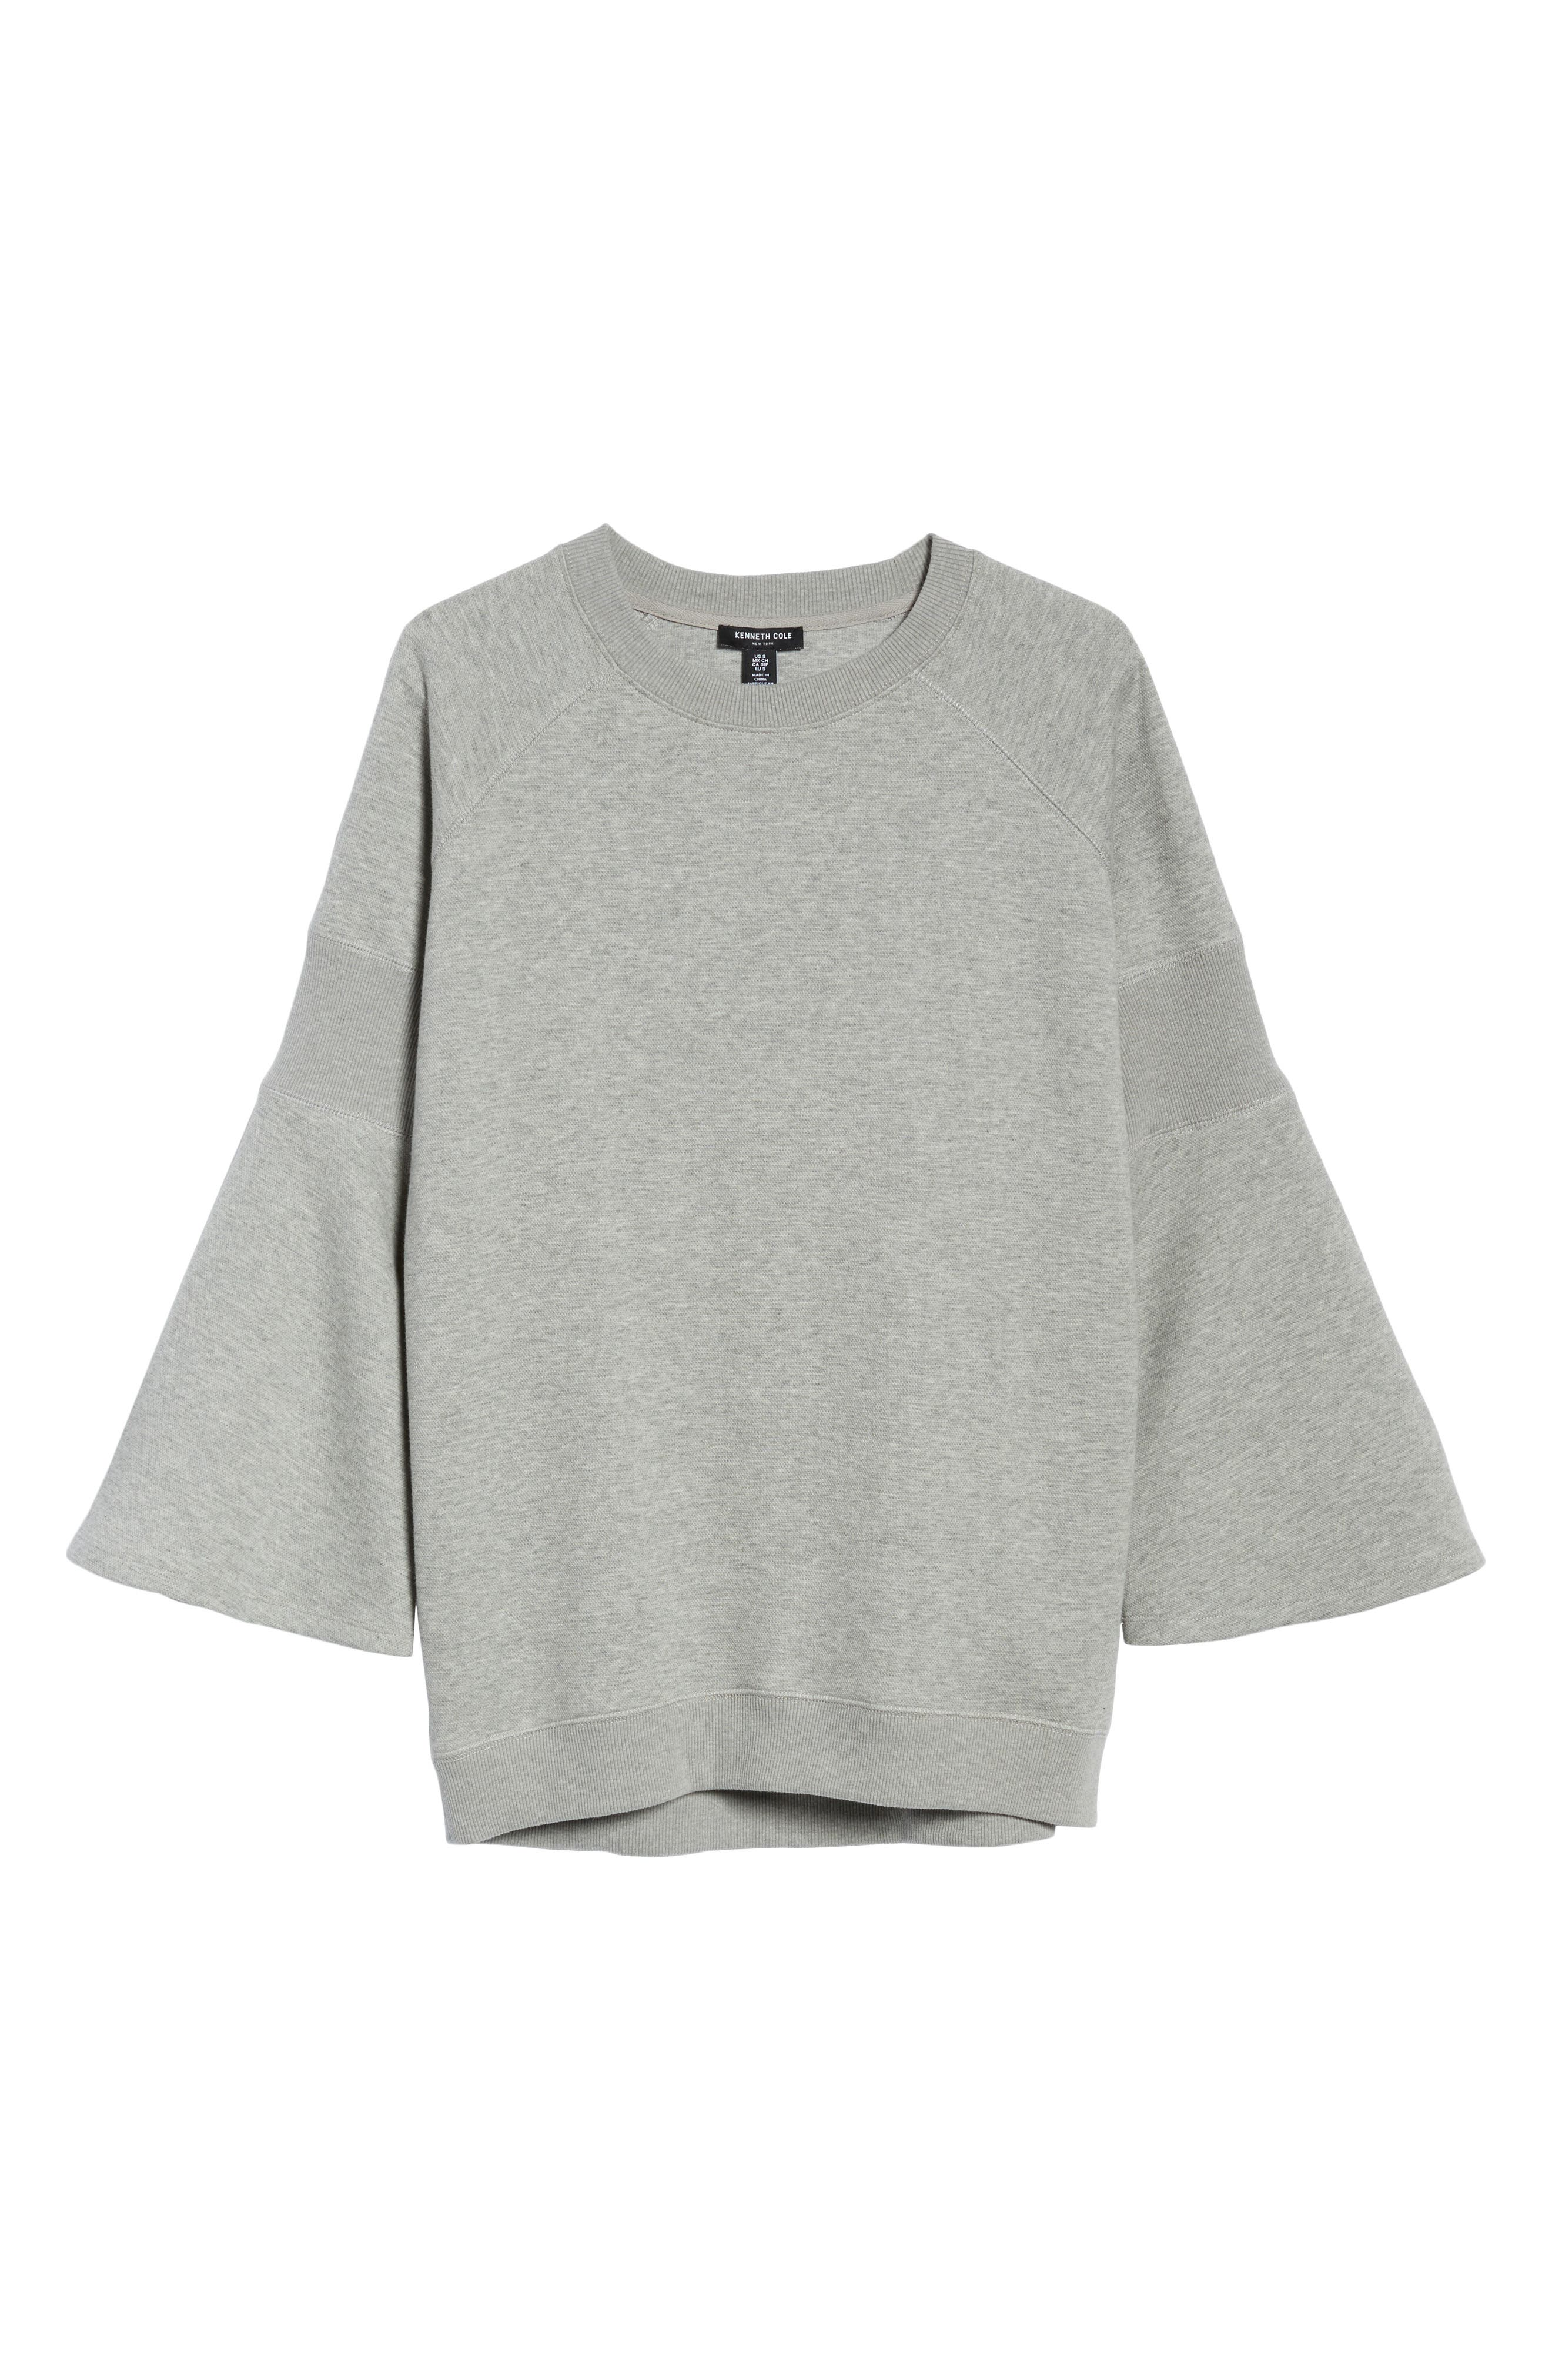 Bell Sleeve Ribbed Sweatshirt,                             Alternate thumbnail 6, color,                             Heather Gray Bros